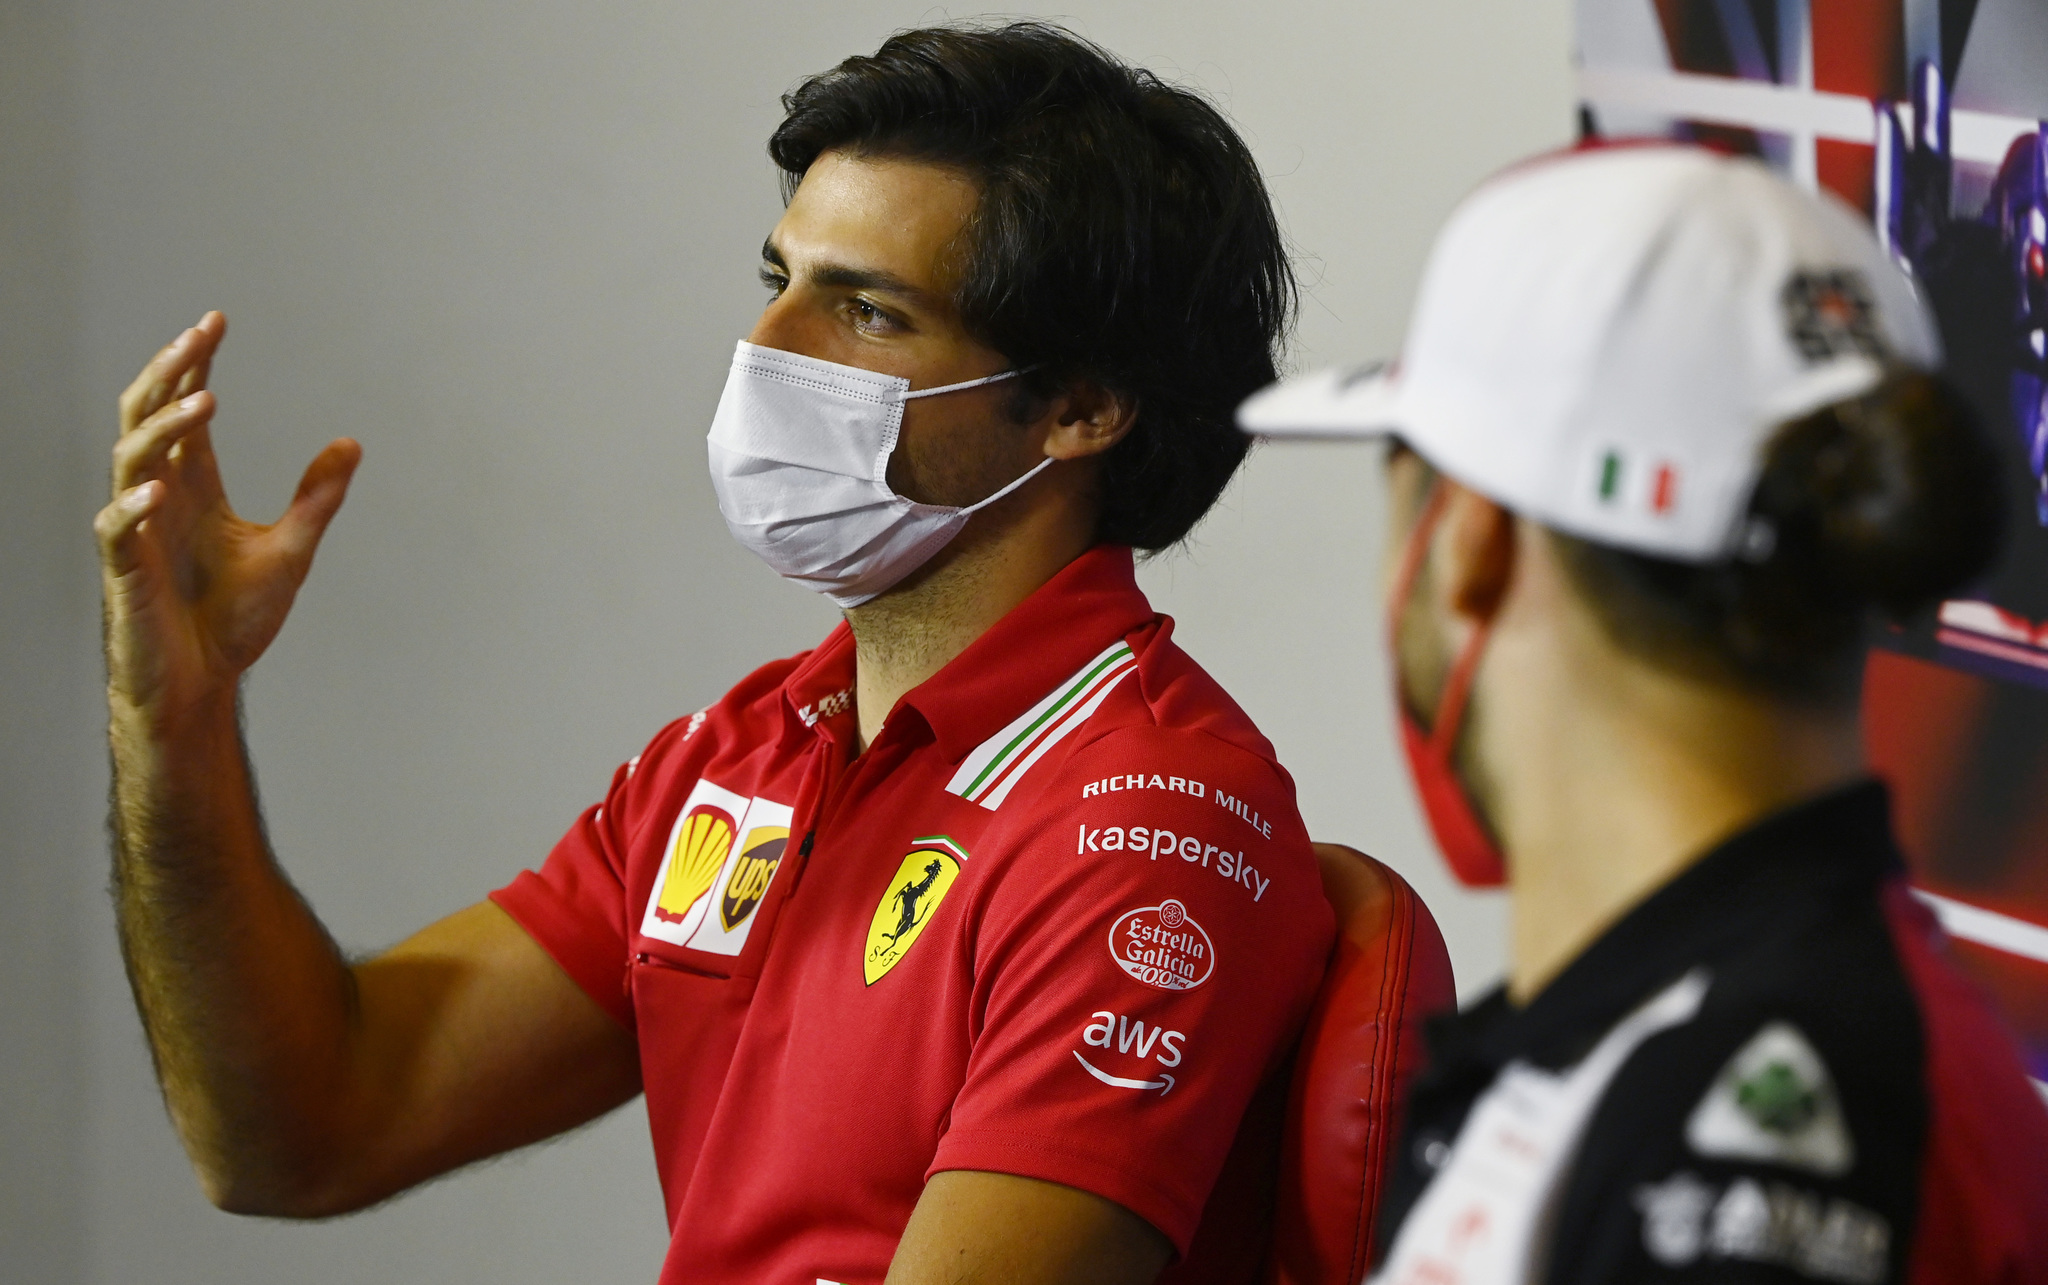 Ferrari driver Carlos Sainz of Spain, left, and Alfa Romeo driver Antonio Giovinazzi of Italy attend a media conference at the lt;HIT gt;Silverstone lt;/HIT gt; circuit, lt;HIT gt;Silverstone lt;/HIT gt;, England, Thursday, July 15, 2021. The British Formula One Grand Prix will be held on Sunday. (Mark Sutton, Pool Photo via AP)